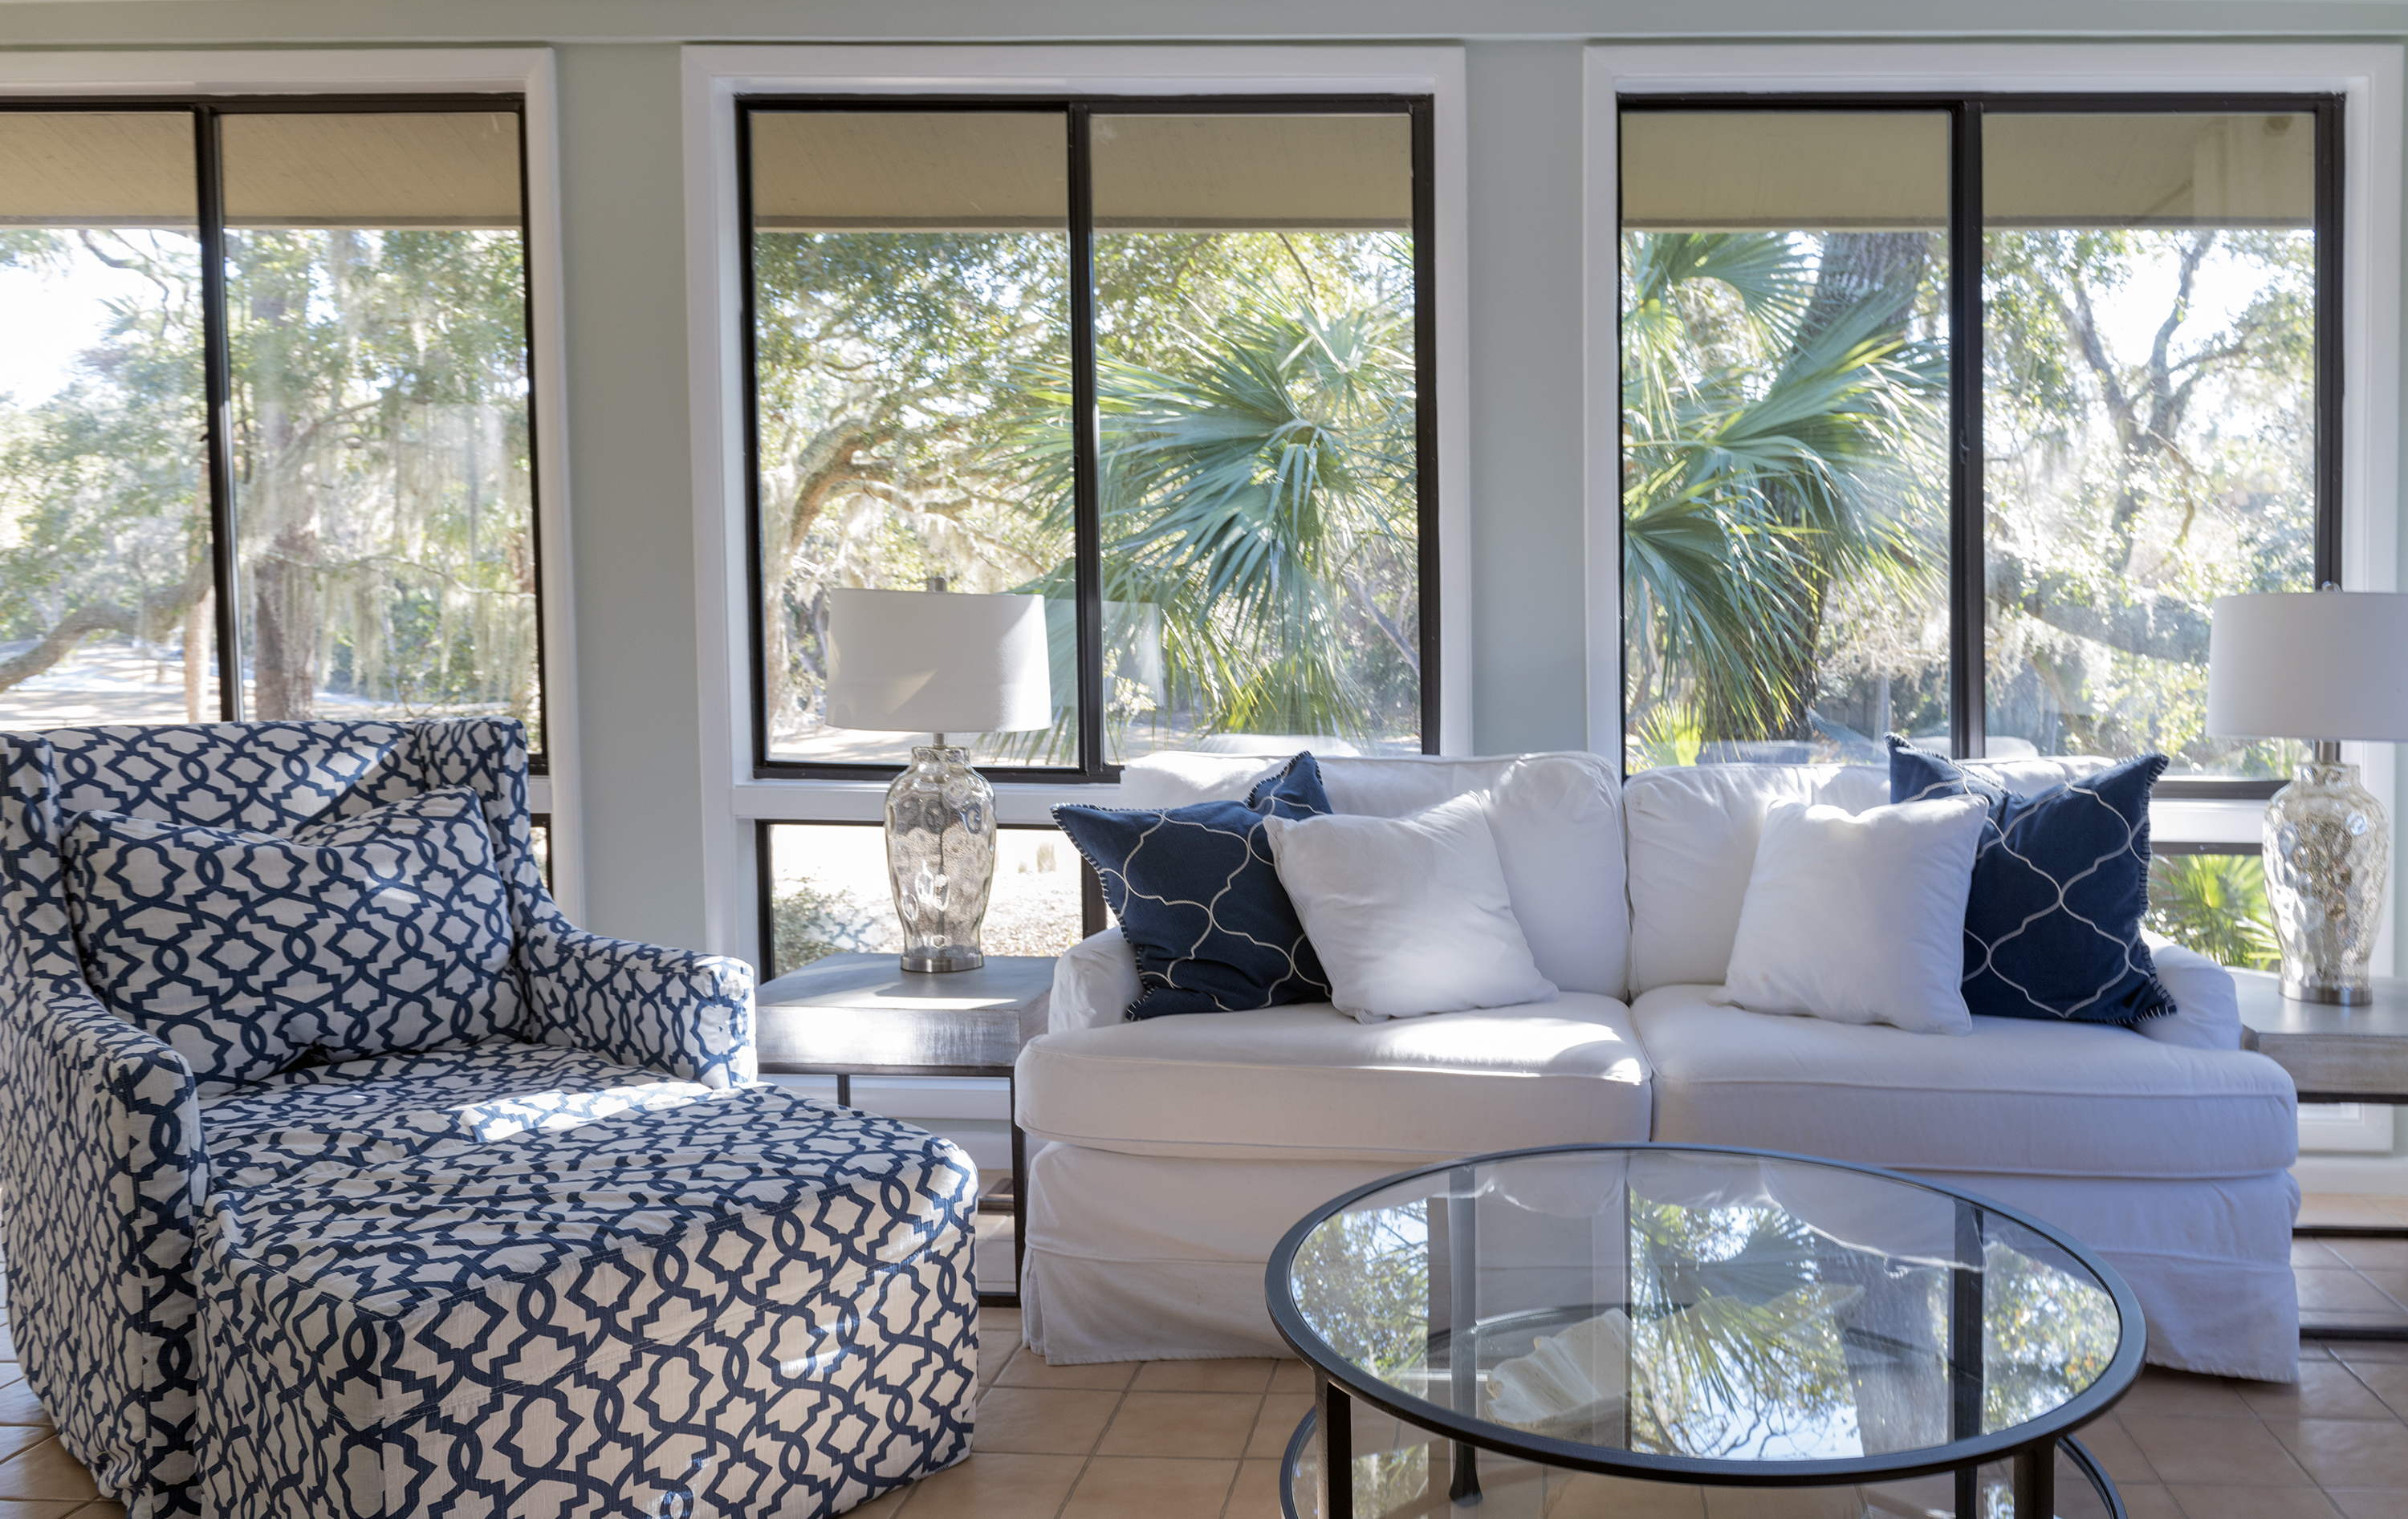 The sunroom offers panoramic views of Seabrooks natural beauty.